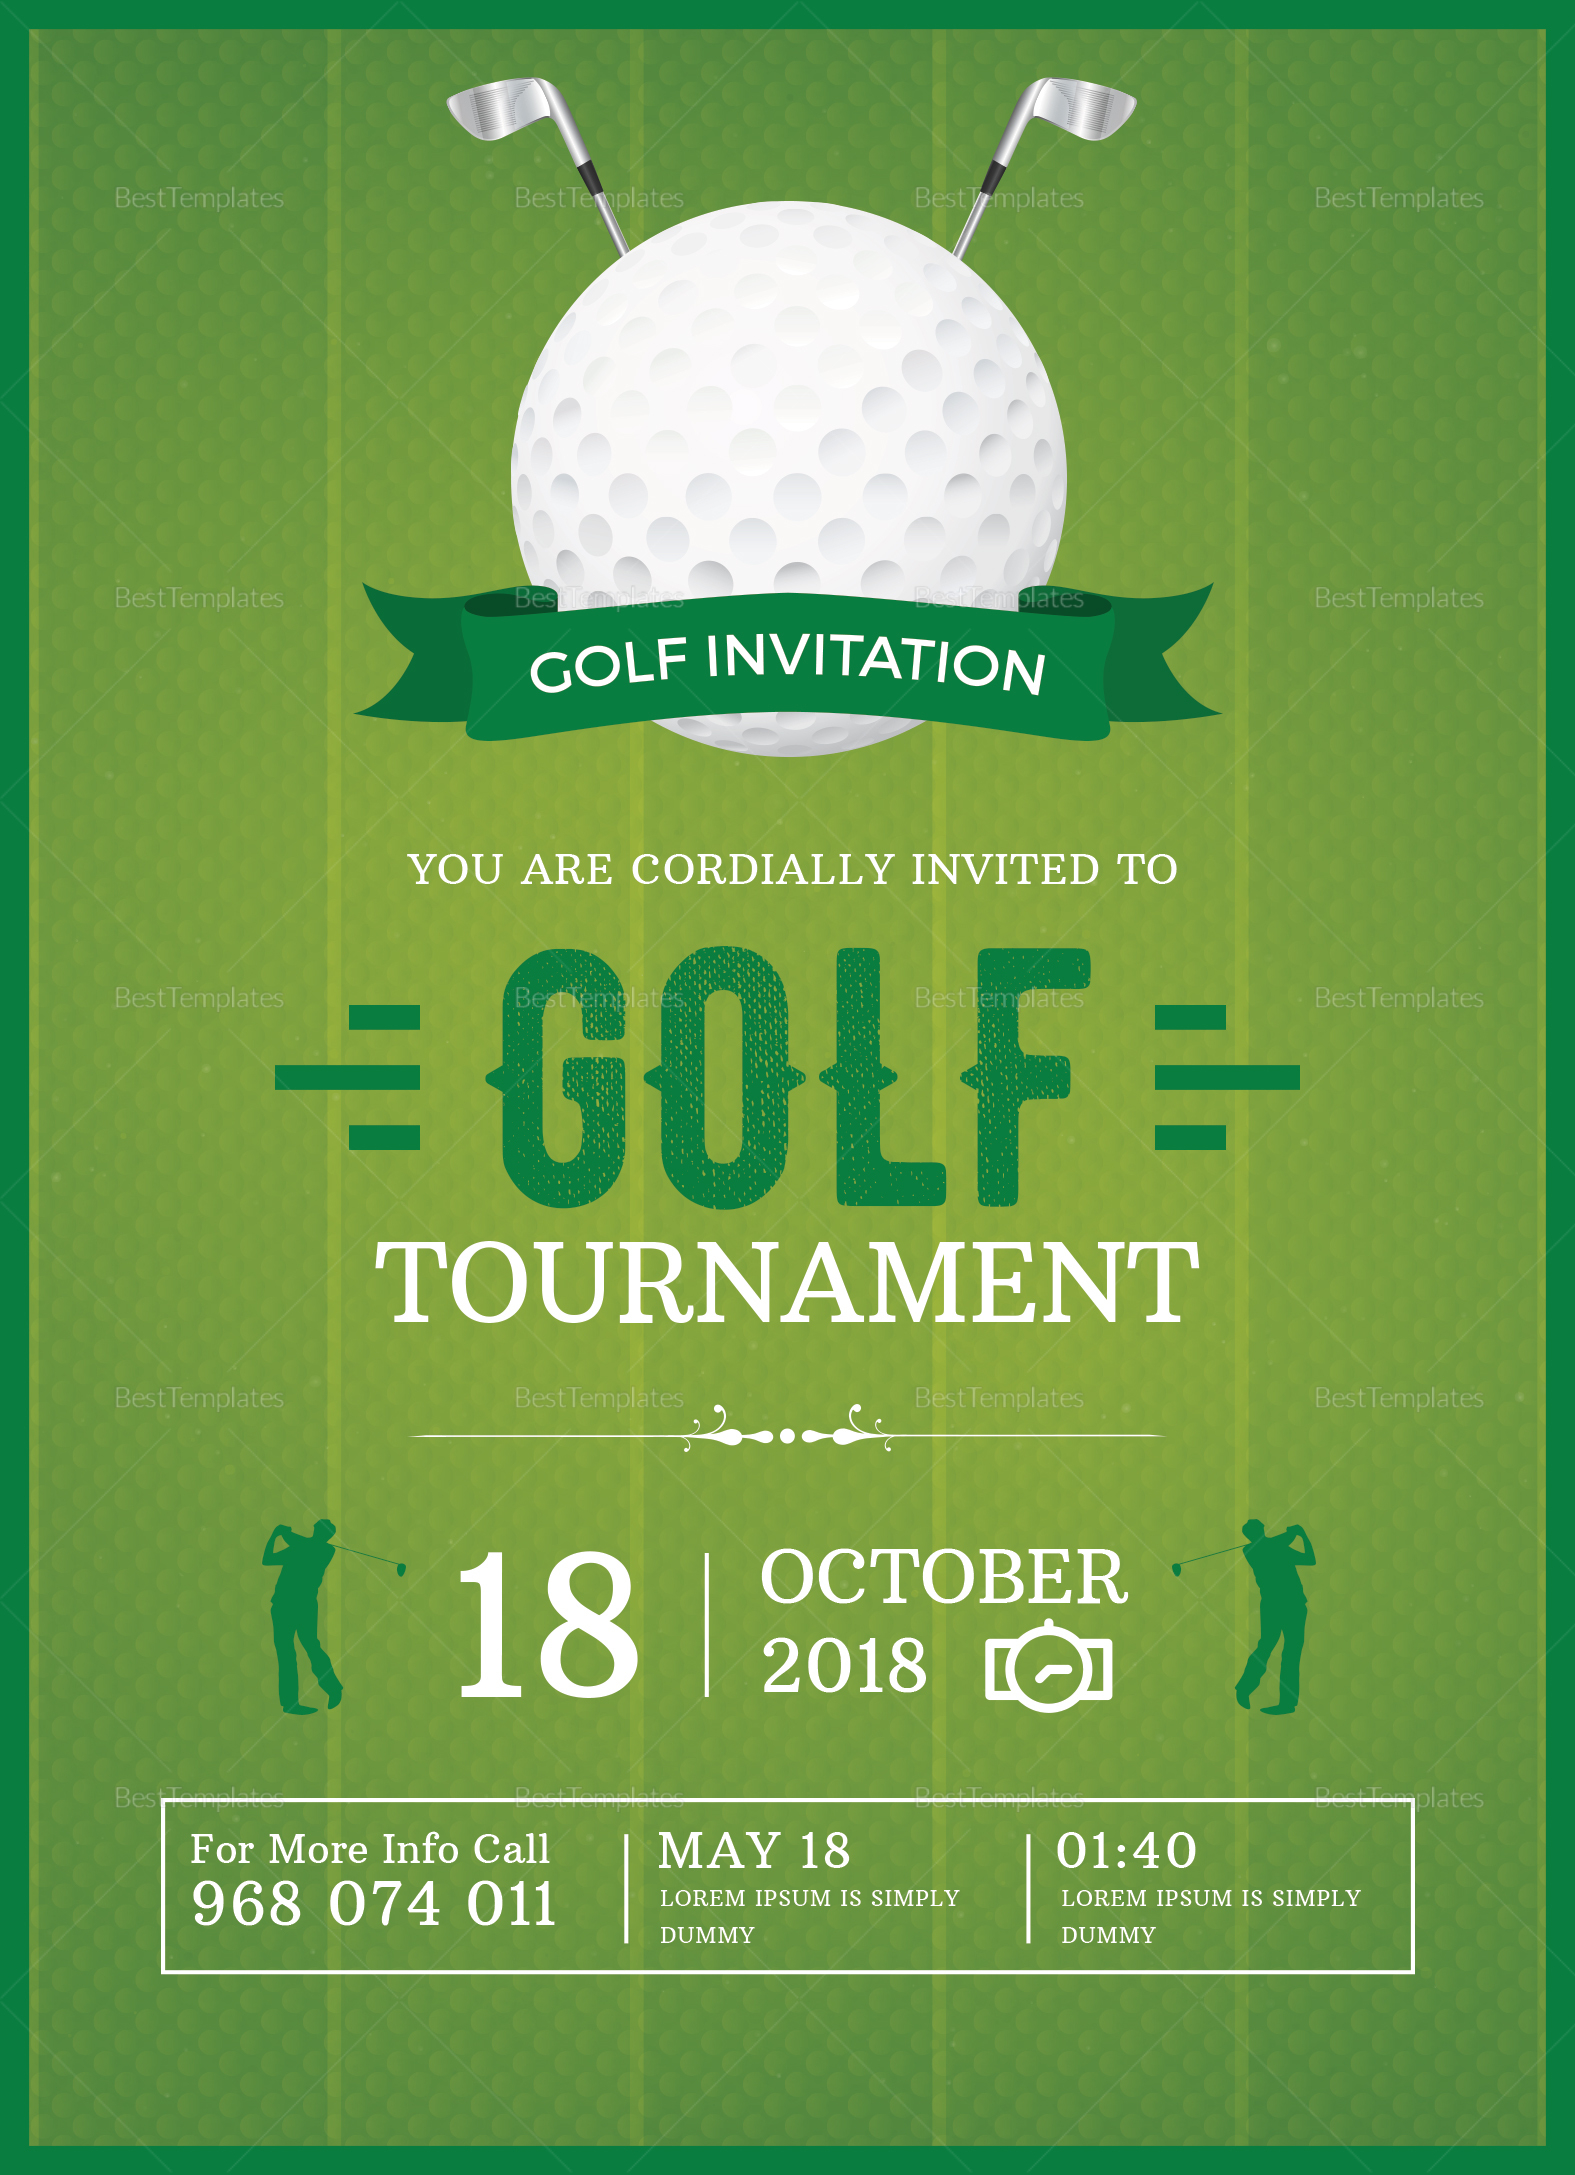 golf invitation design template in word psd publisher